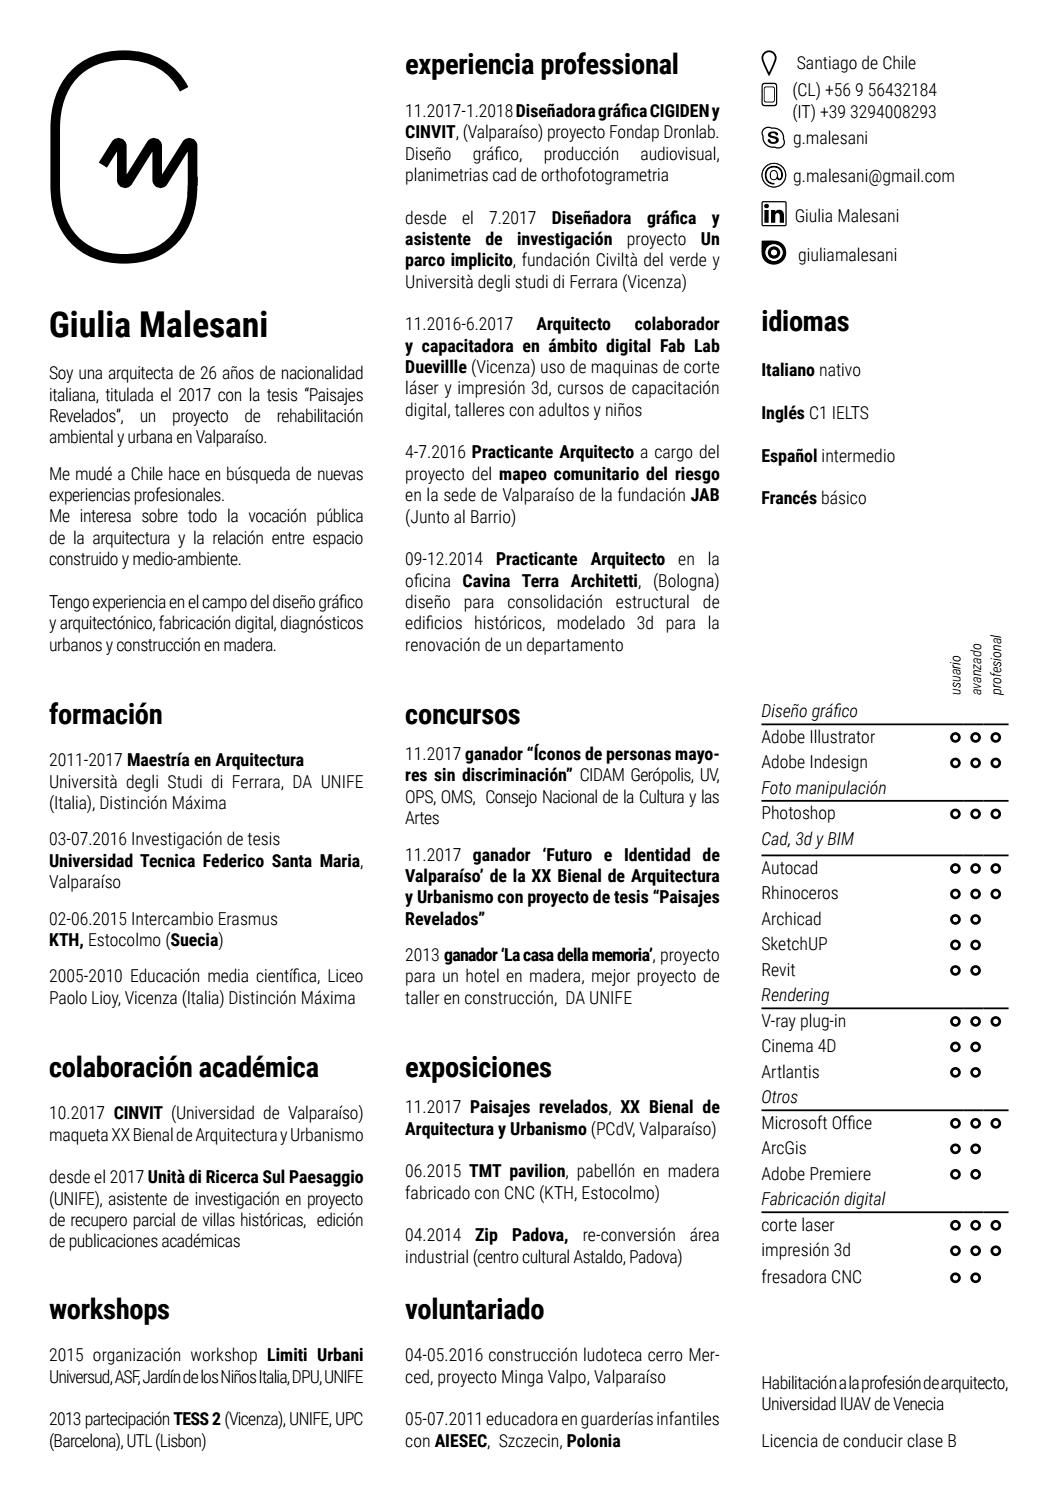 Curriculum vitae (Spanish version) Giulia Malesani by Giulia ...